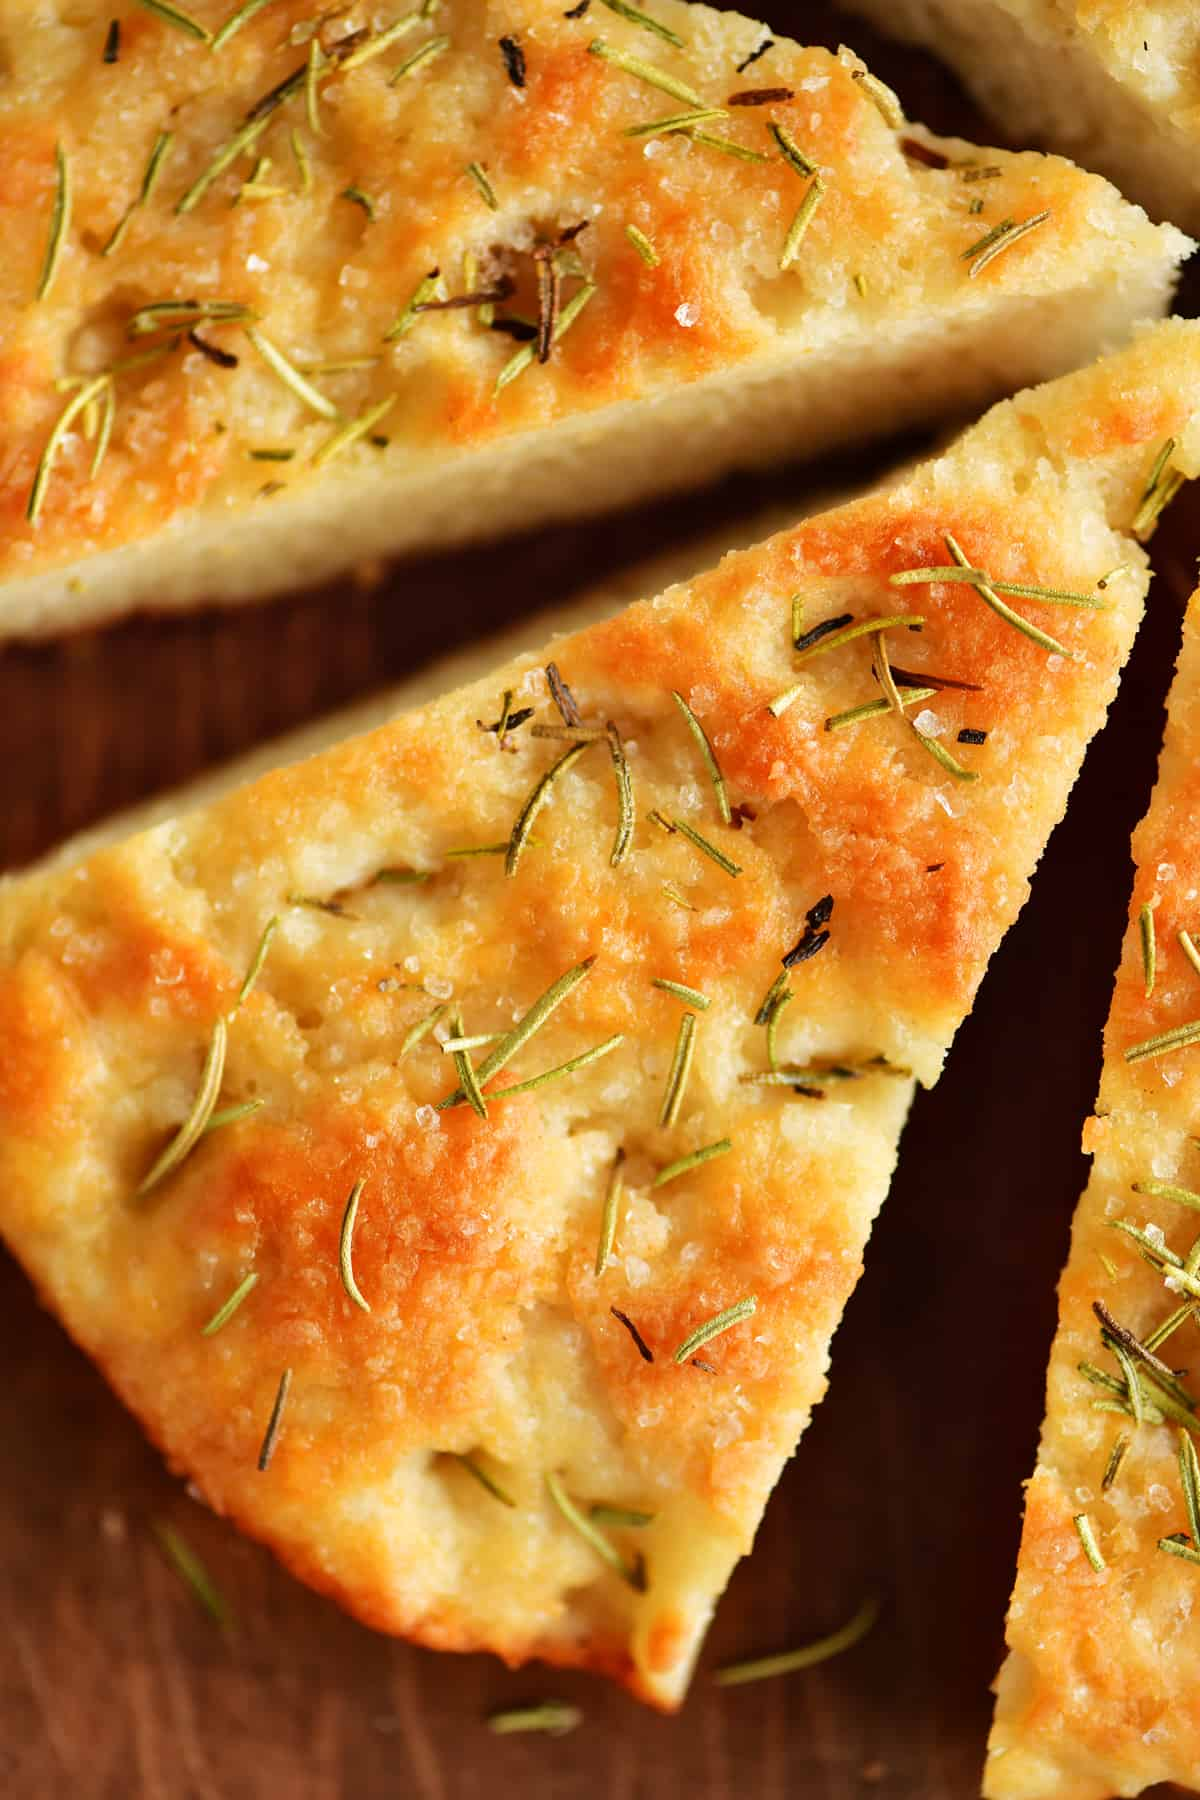 top view of a slice of baked rosemary focaccia bread